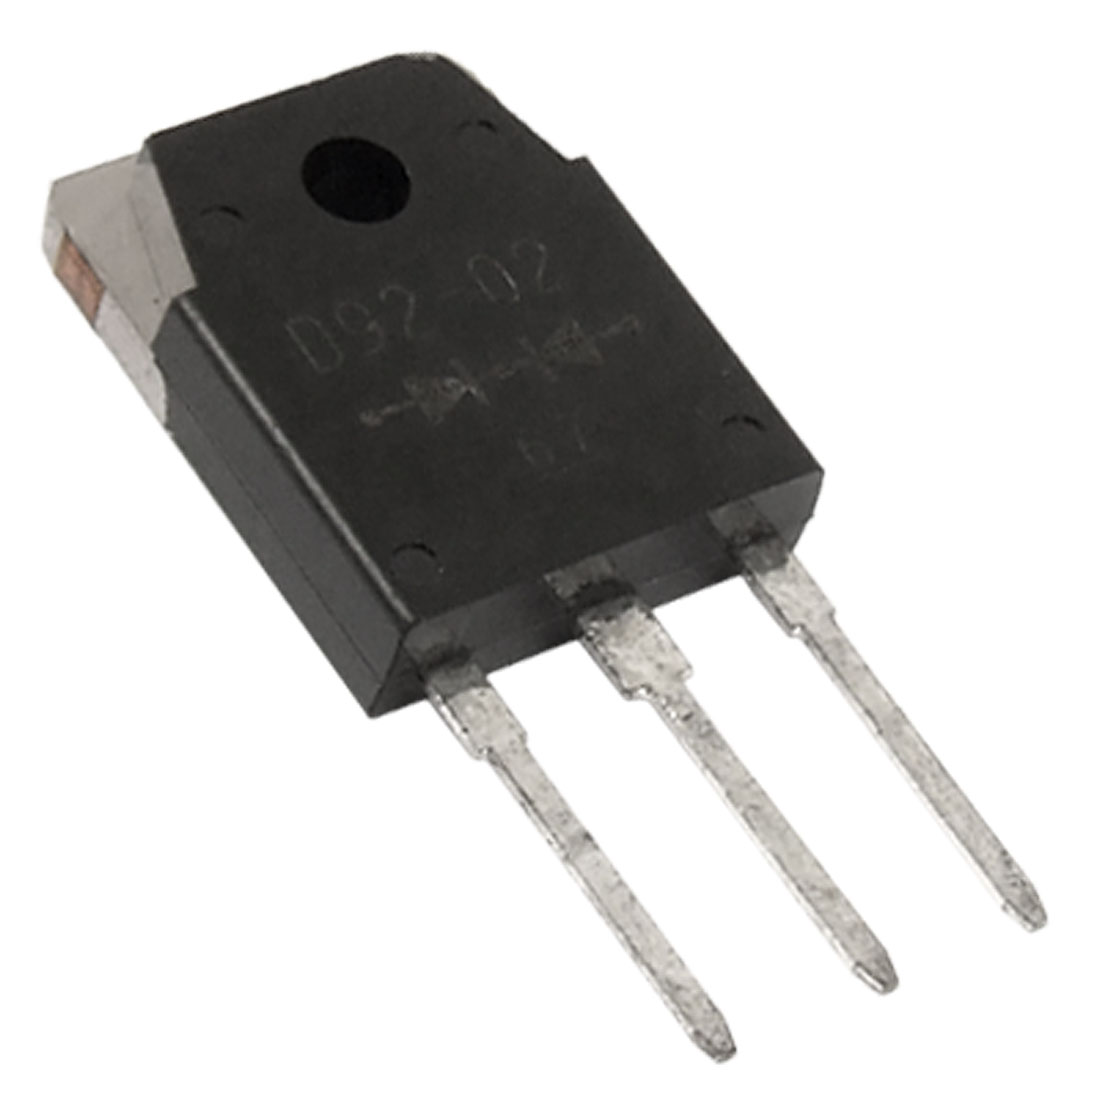 D92-02 Integrated Circuit 20A 200V Fast Recovery Diode